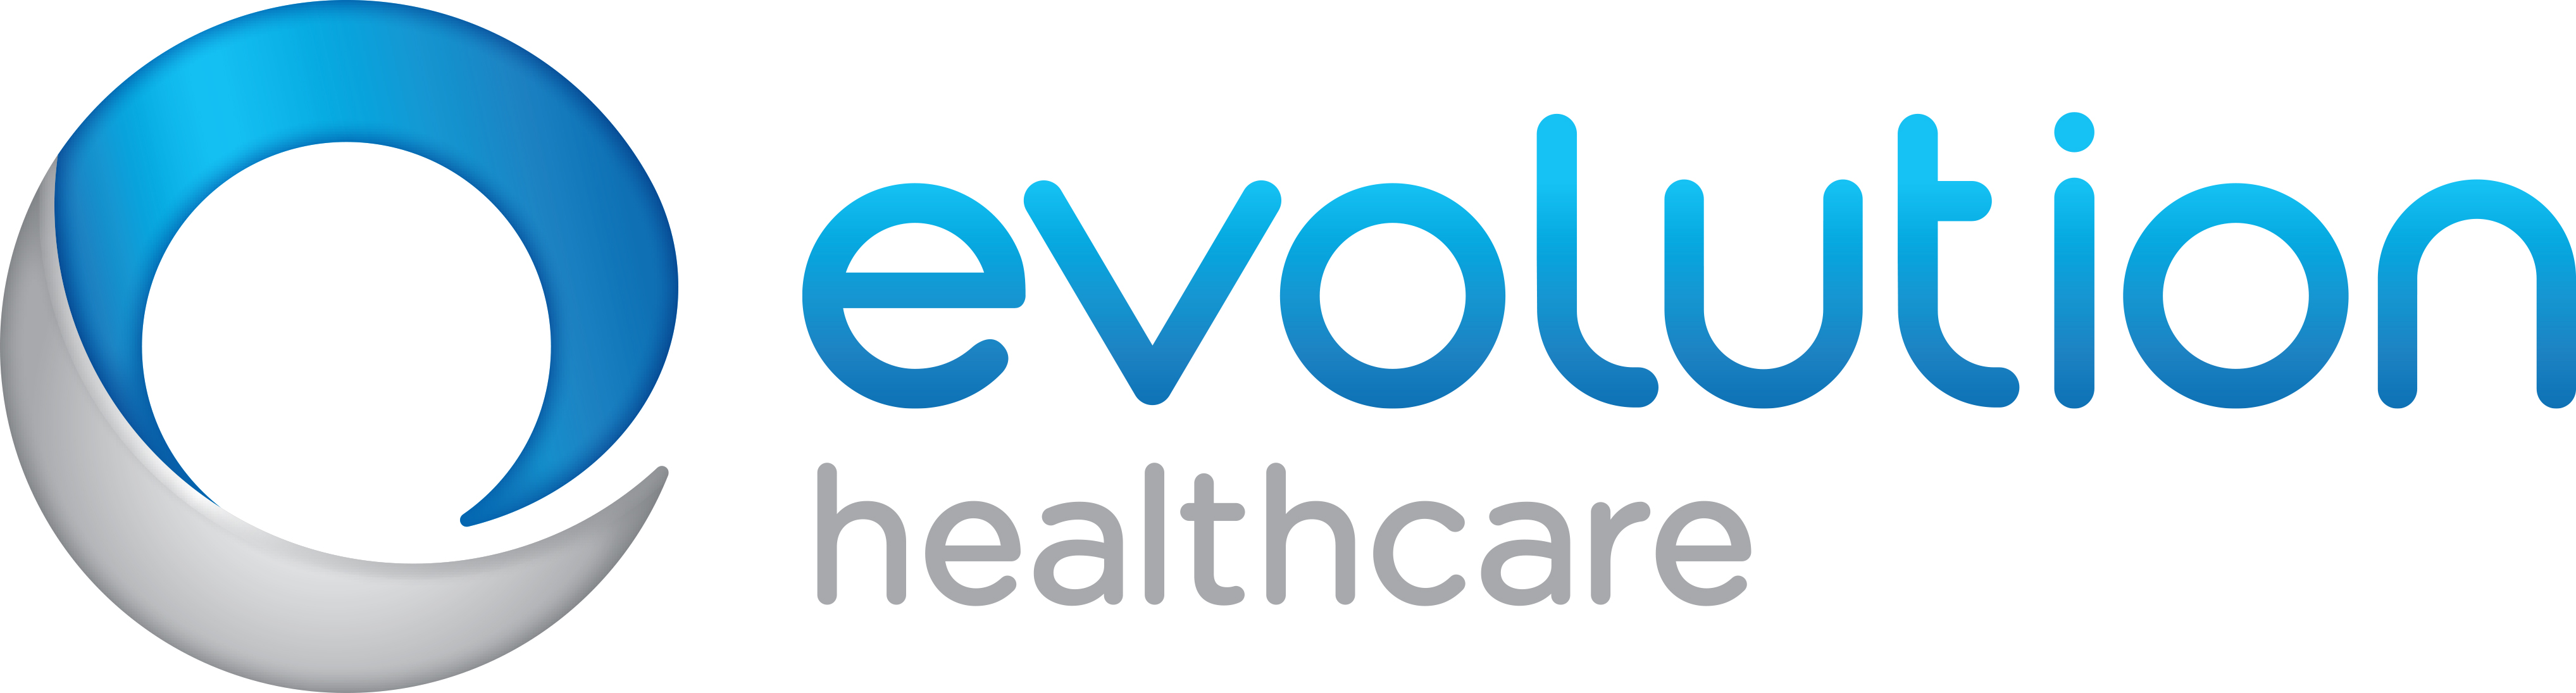 Evolution Healthcare logo